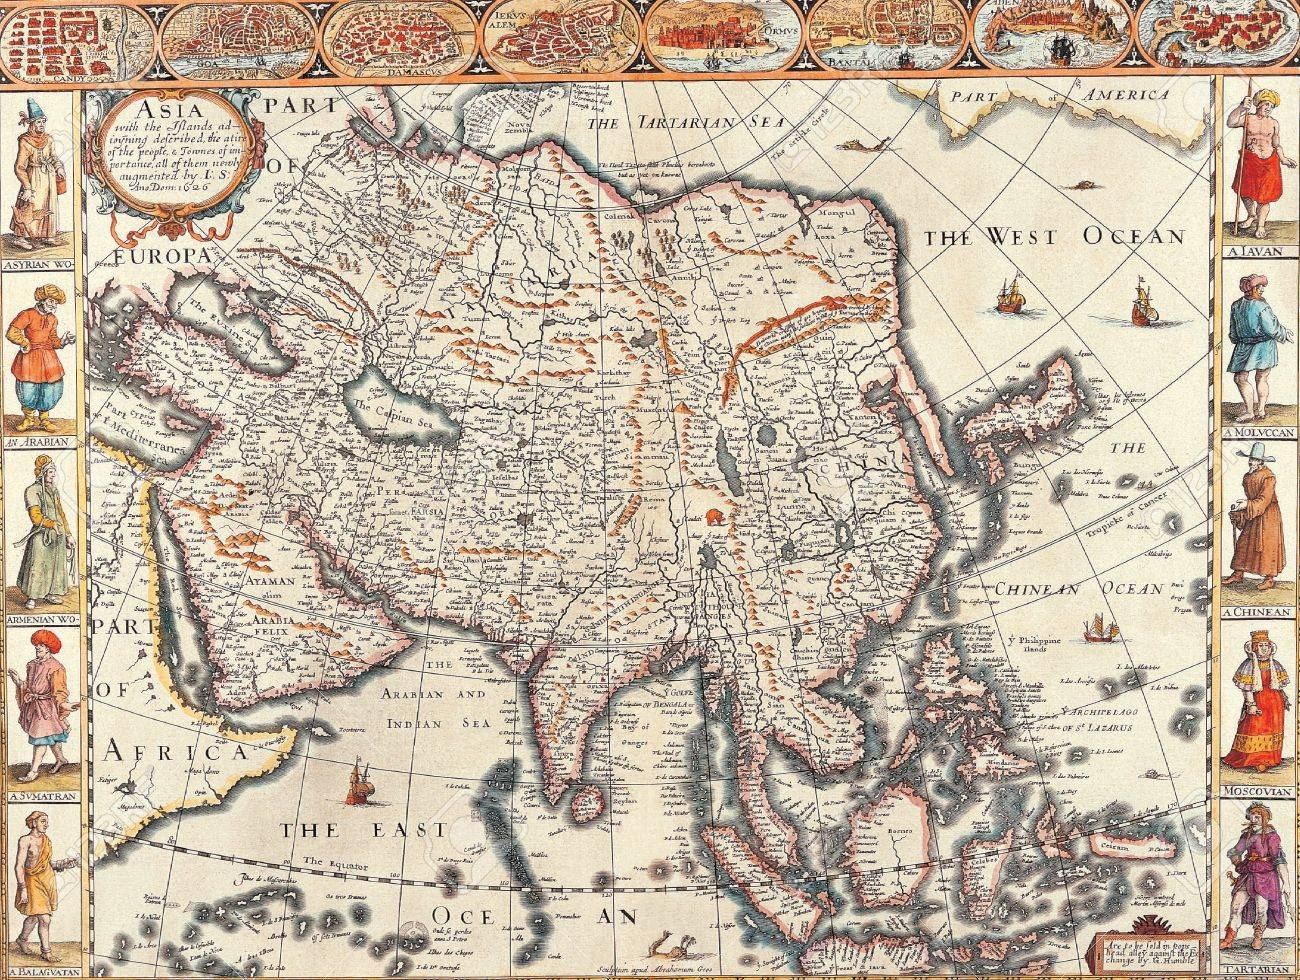 Antique Maps Of The World Map Of Asia John Speed C 1626 – Global Map of Asia